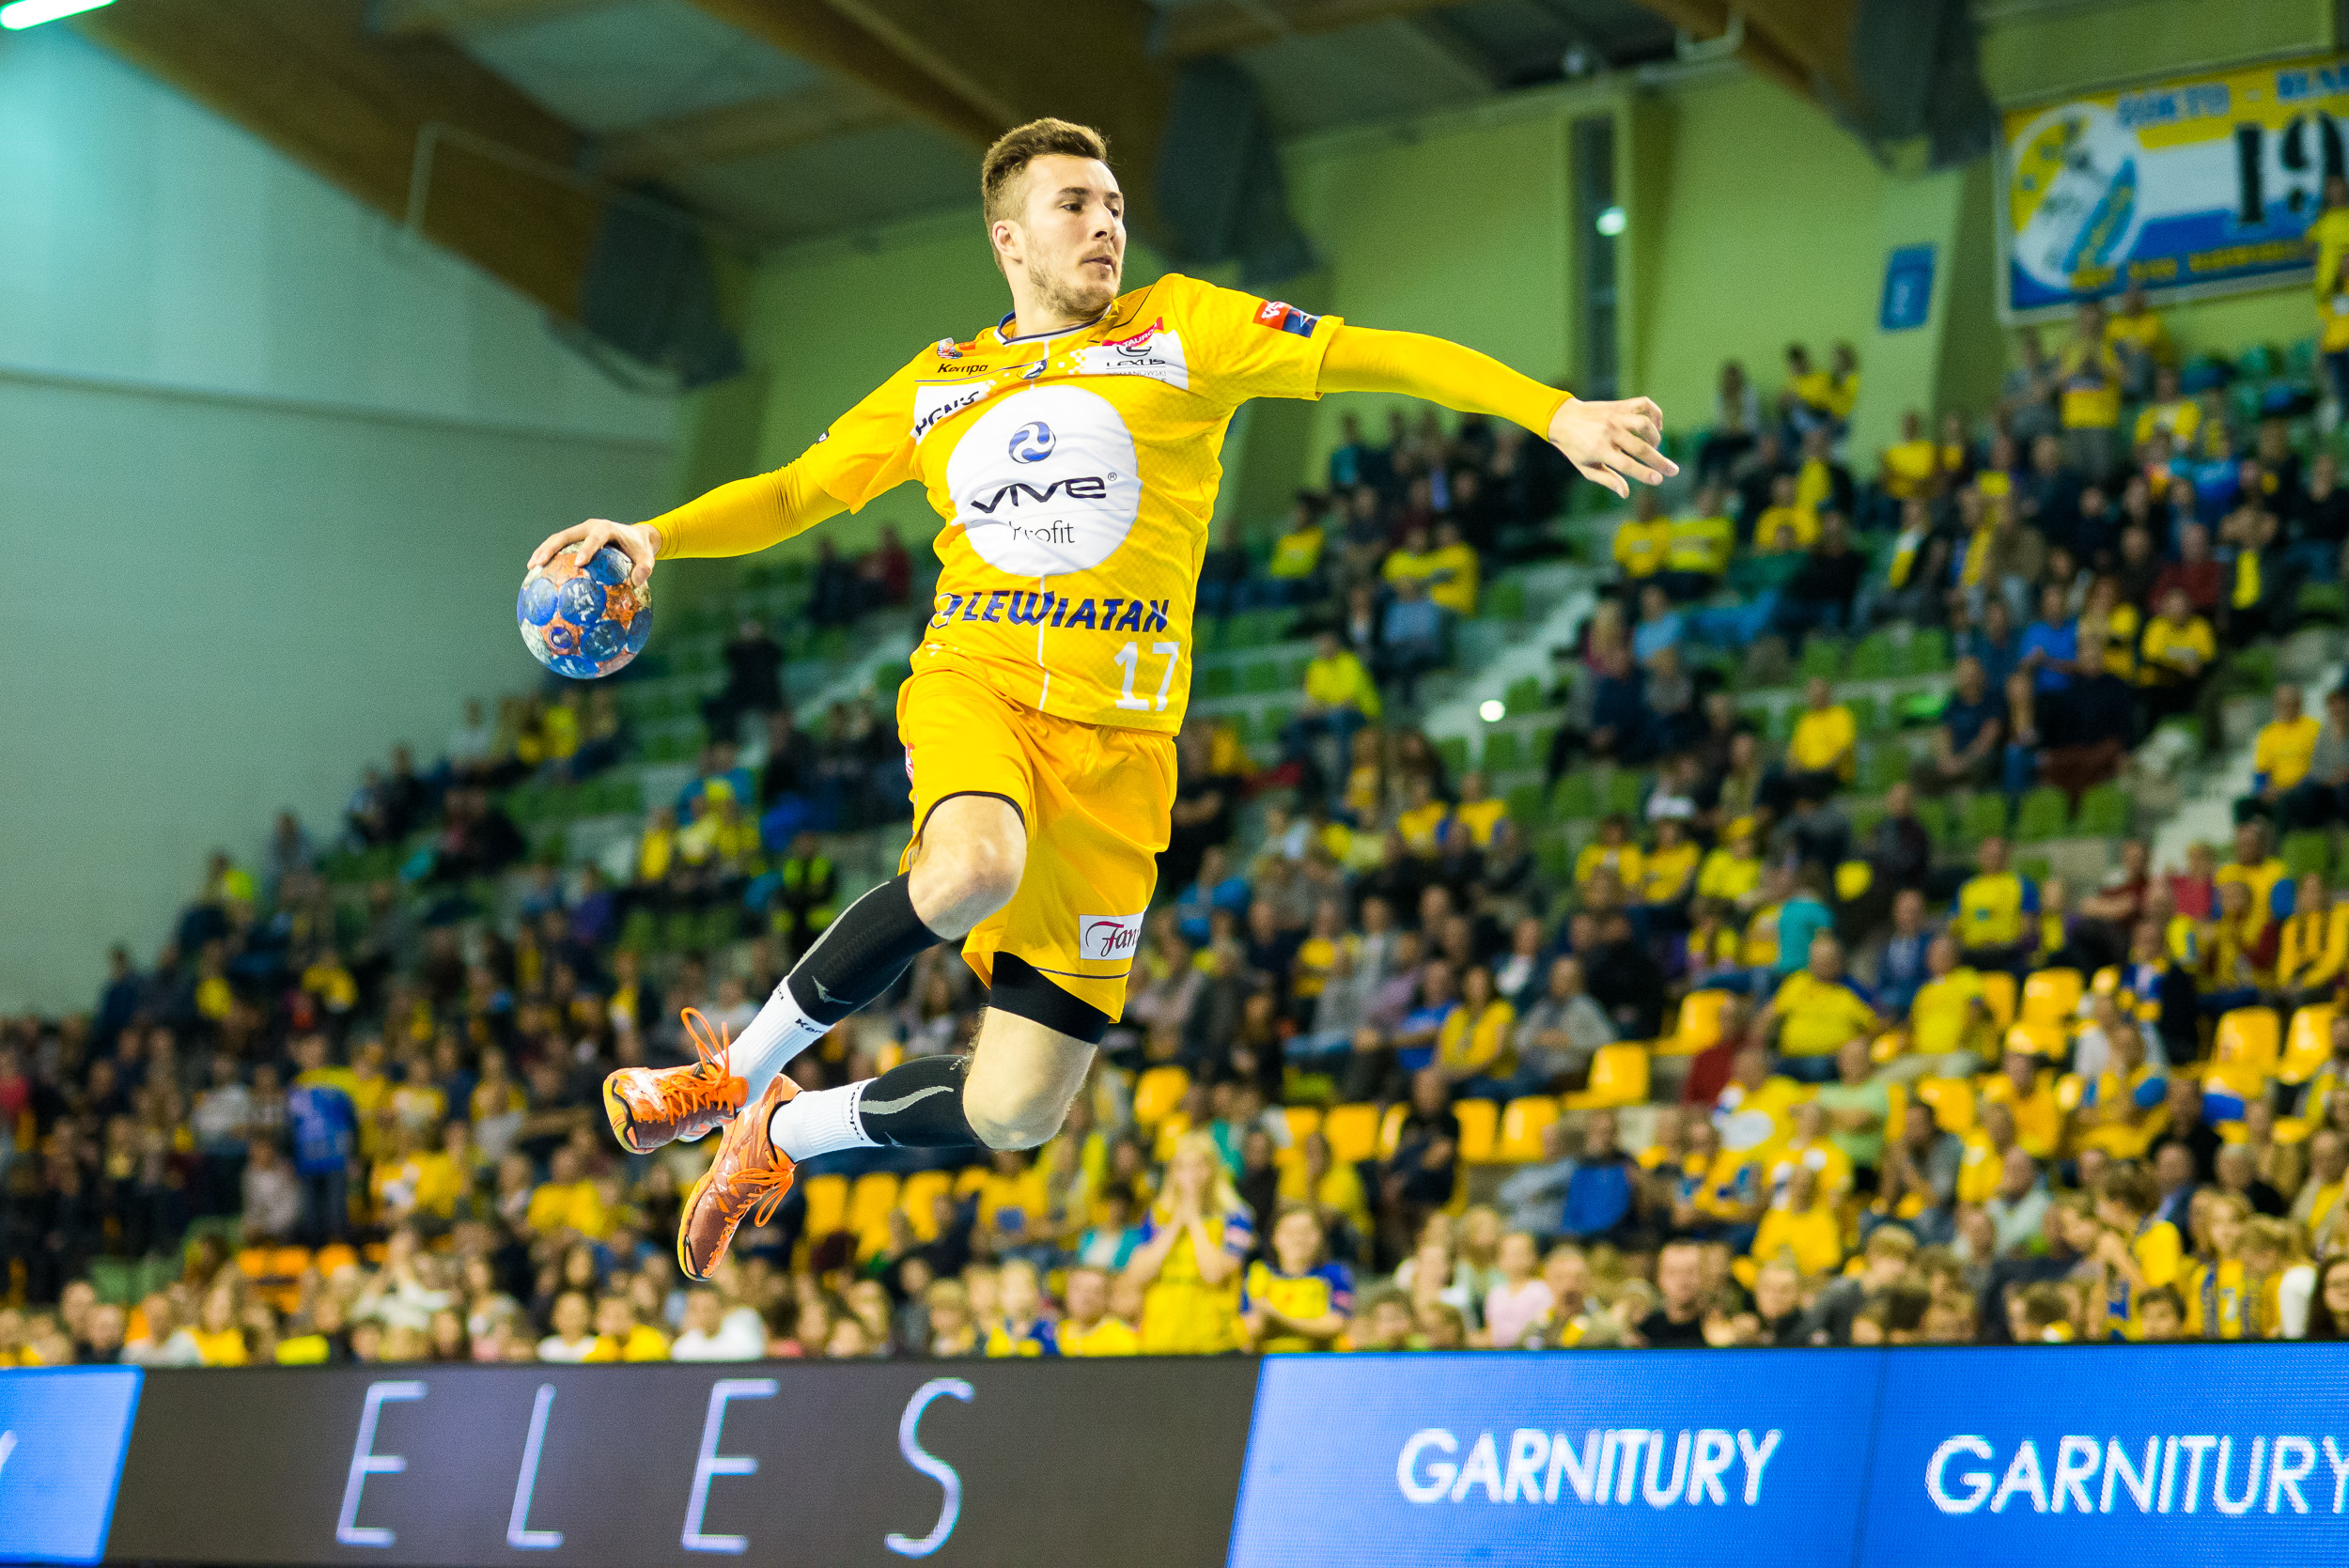 2015.10.20 KIELCE PILKA RECZNA PGNIG SUPERLIGA SEZON 2015/2016 HANDBALL PGNIG SUPERLIGA SEASON 2015/2016 VIVE TAURON KIELCE - KS AZOTY PULAWY N/Z MANUEL STRLEK FOTO DANIEL KORDOS / PRESSFOCUS